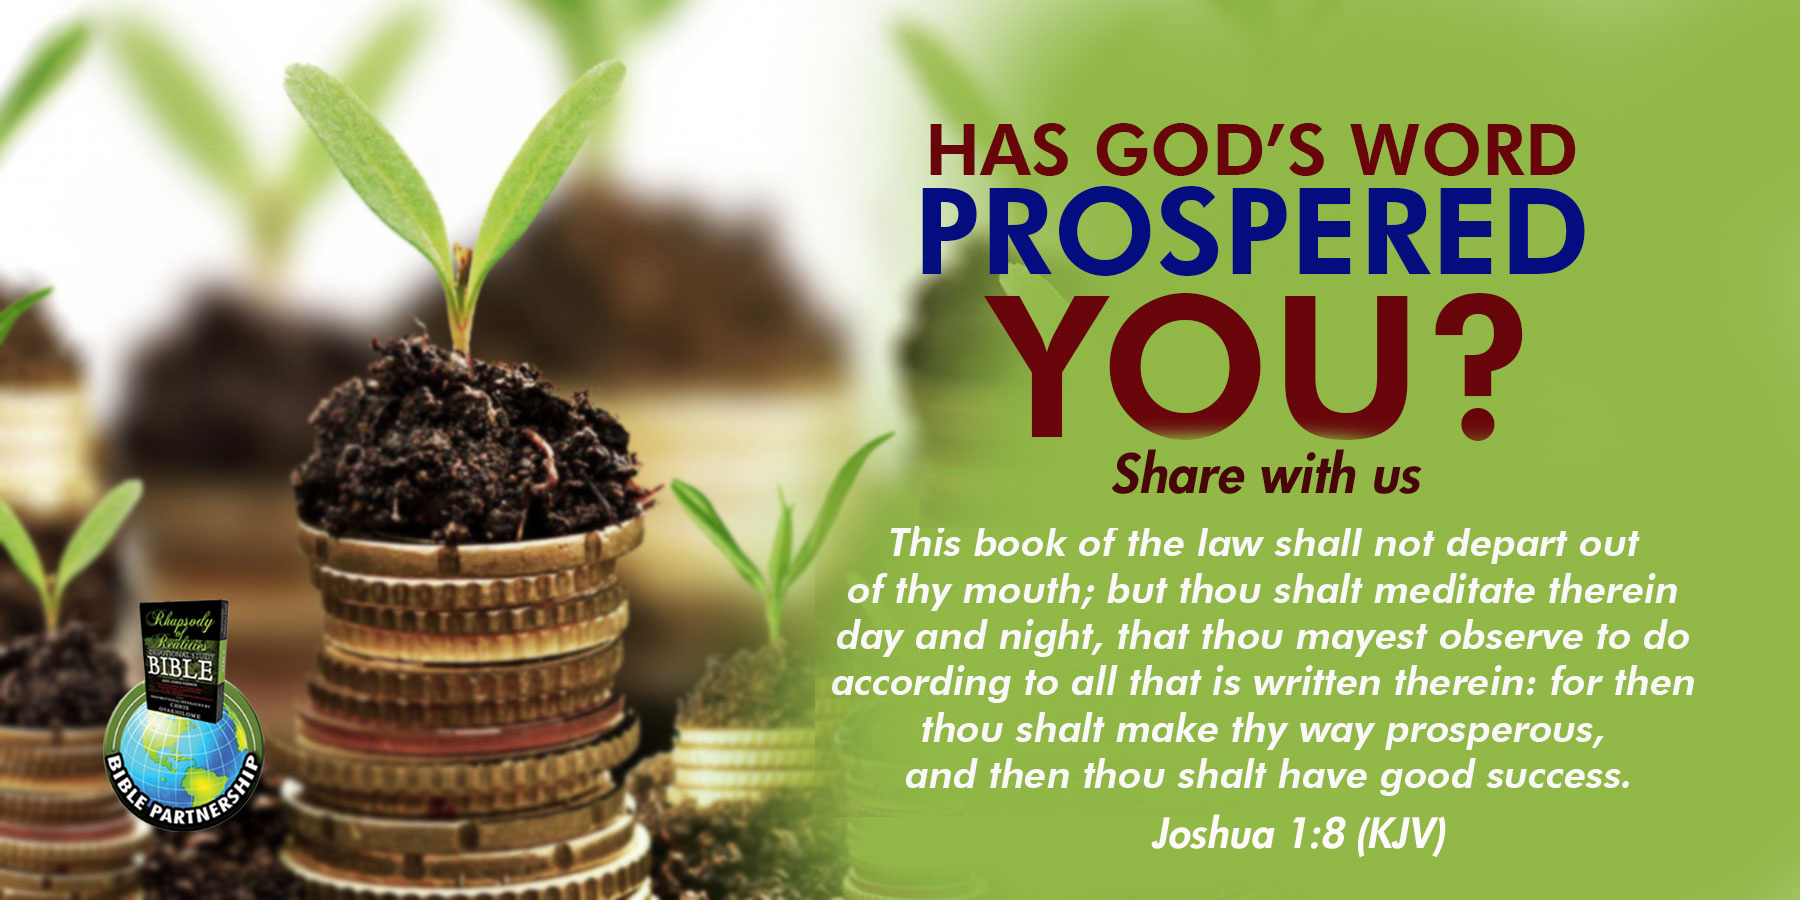 Has God's Word Prospered you?